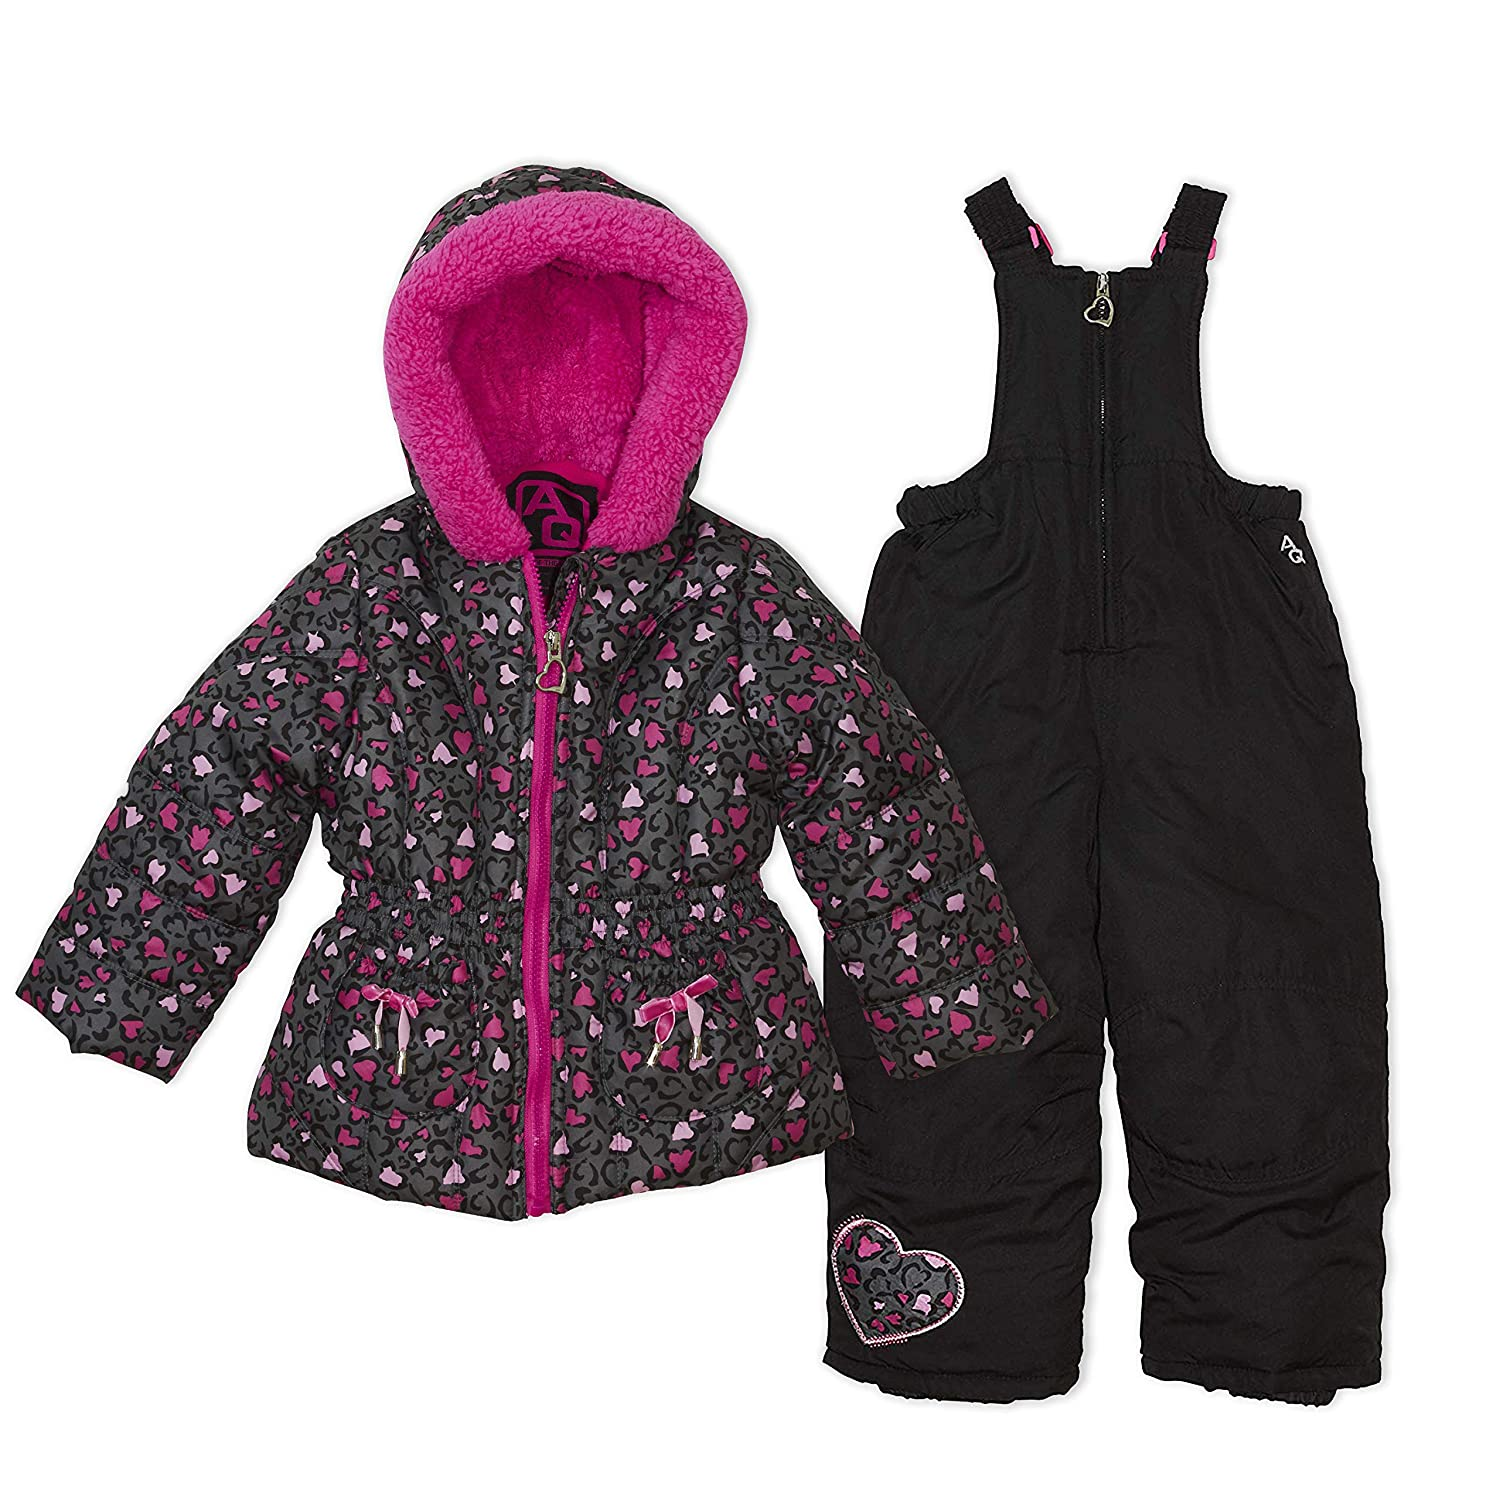 da3effdbf Amazon.com  Arctic Quest Infant   Toddler Girls Puffer Jacket with ...